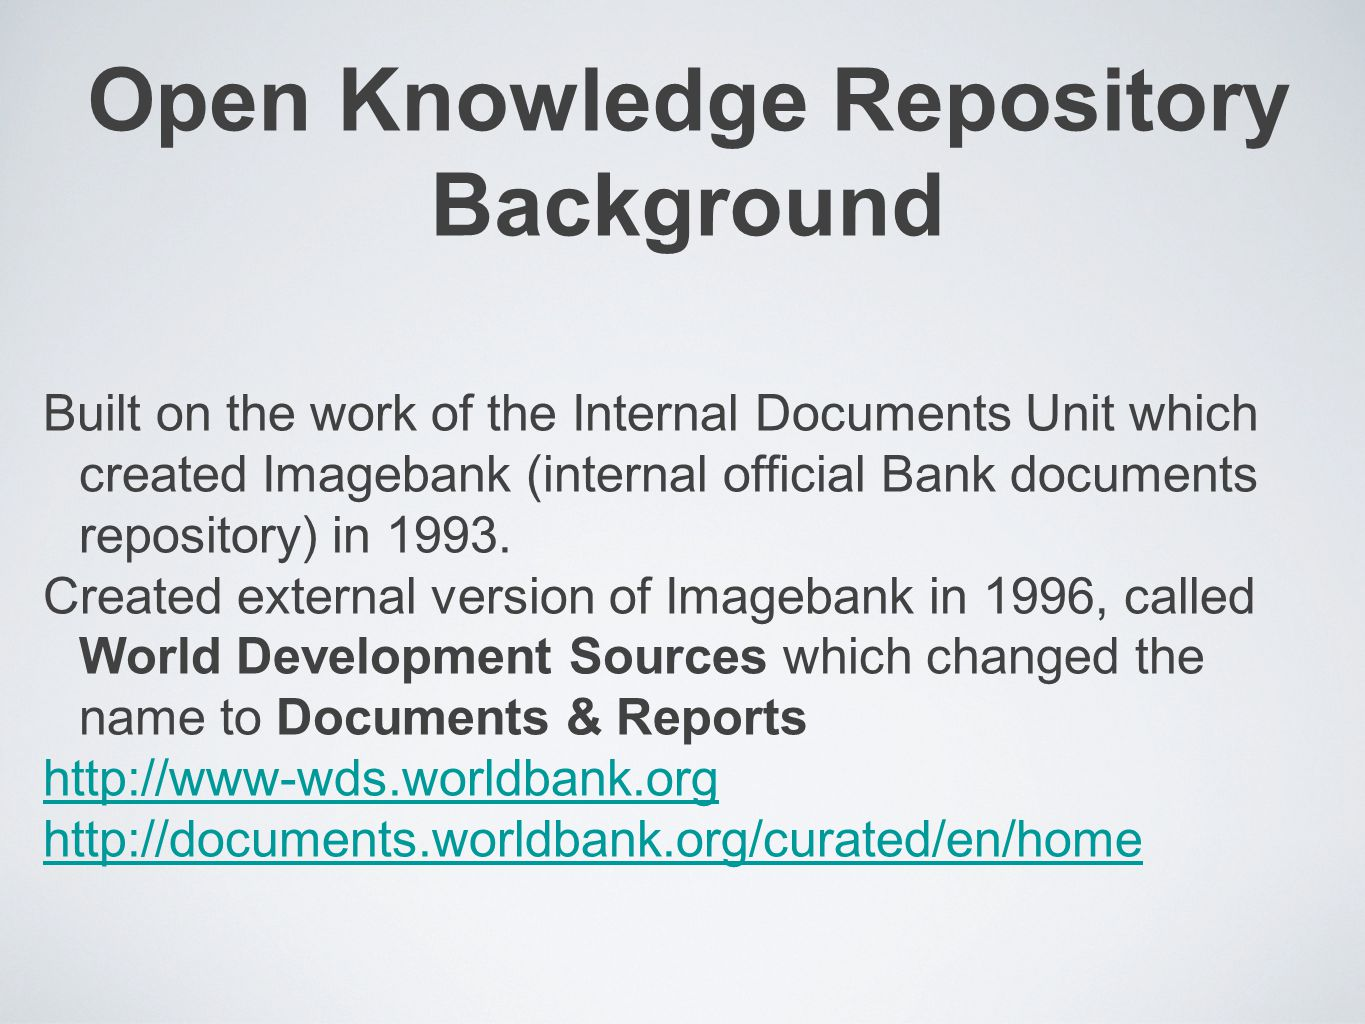 Open Knowledge Repository Background